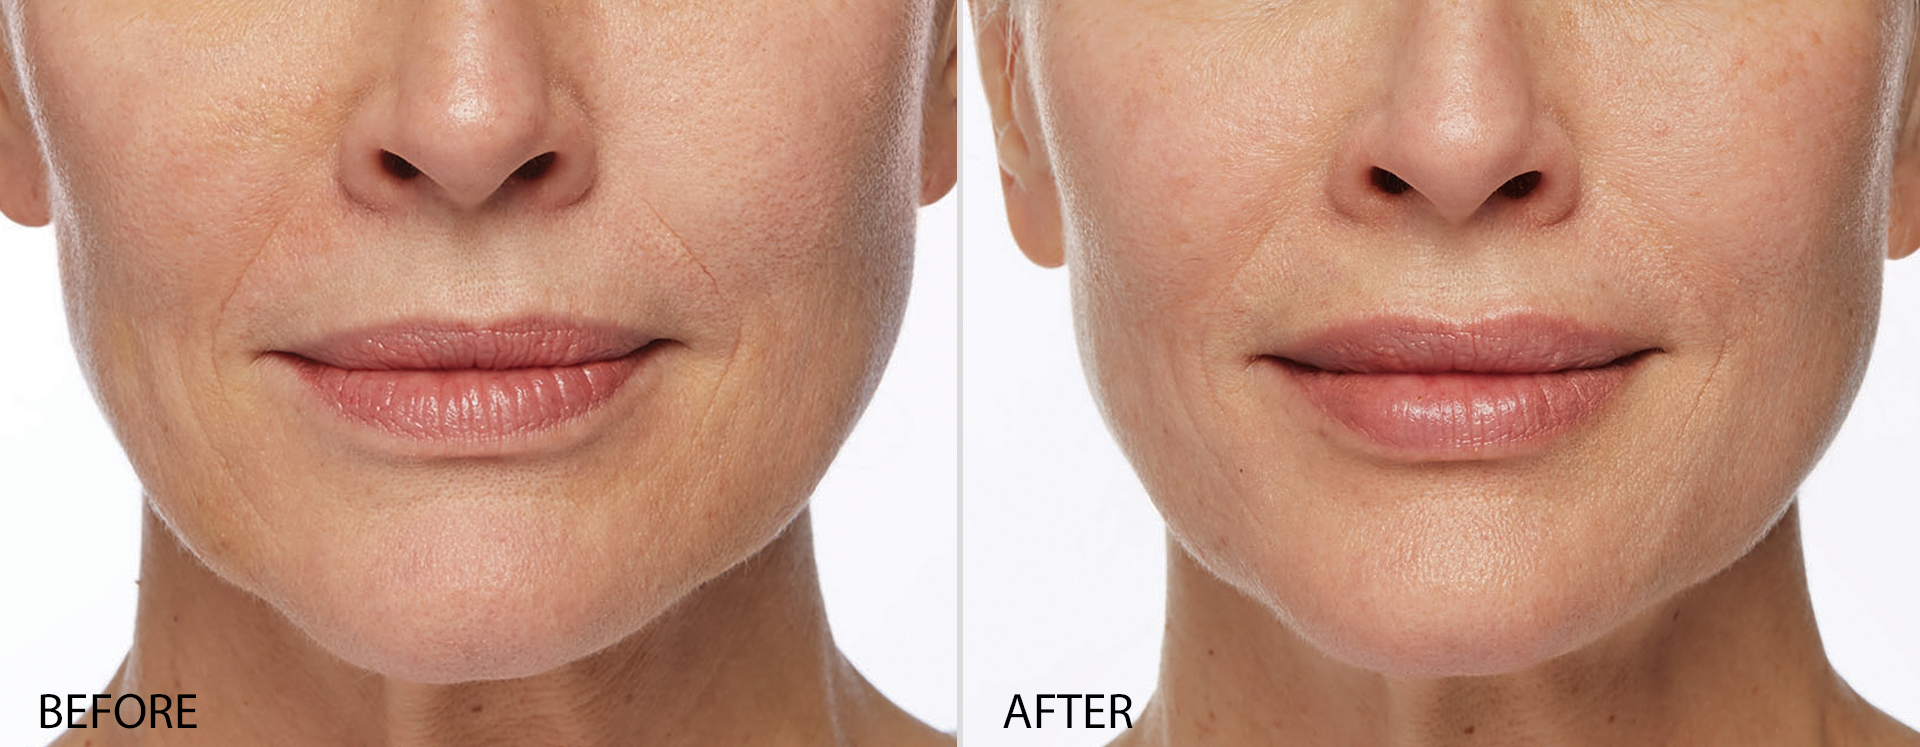 Dr. Terese Taylor M.D. - Cape Coral and Fort Myers Doctor - Restylane Silk - Before and After